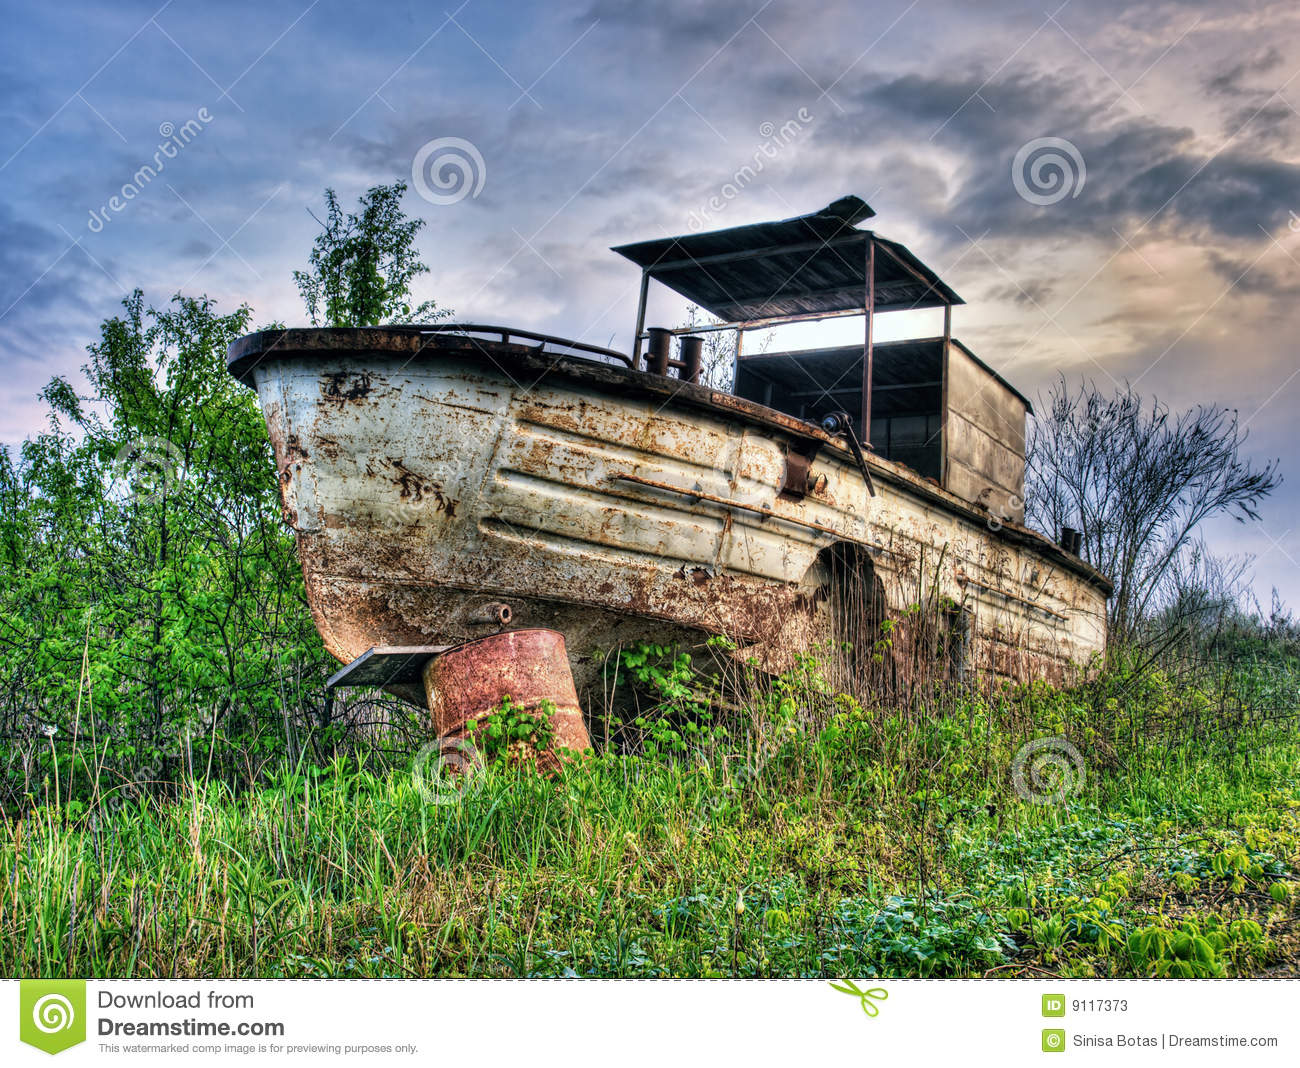 Old river boat stock image image of boat peaceful nature 9117373 old river boat publicscrutiny Image collections